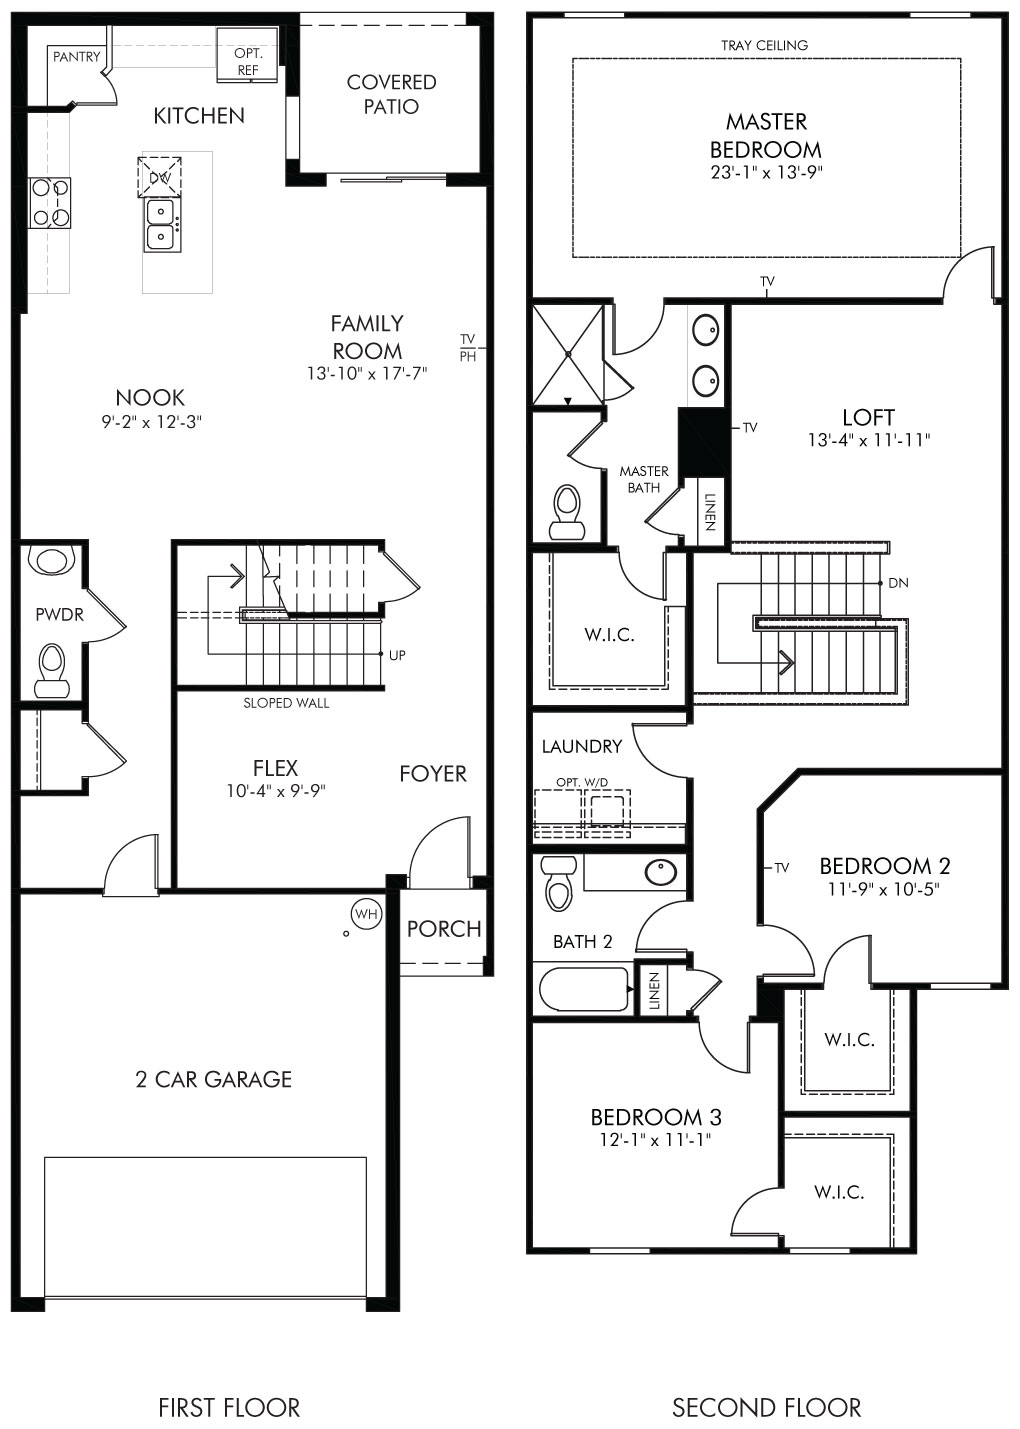 Kingsburg_Floorplan